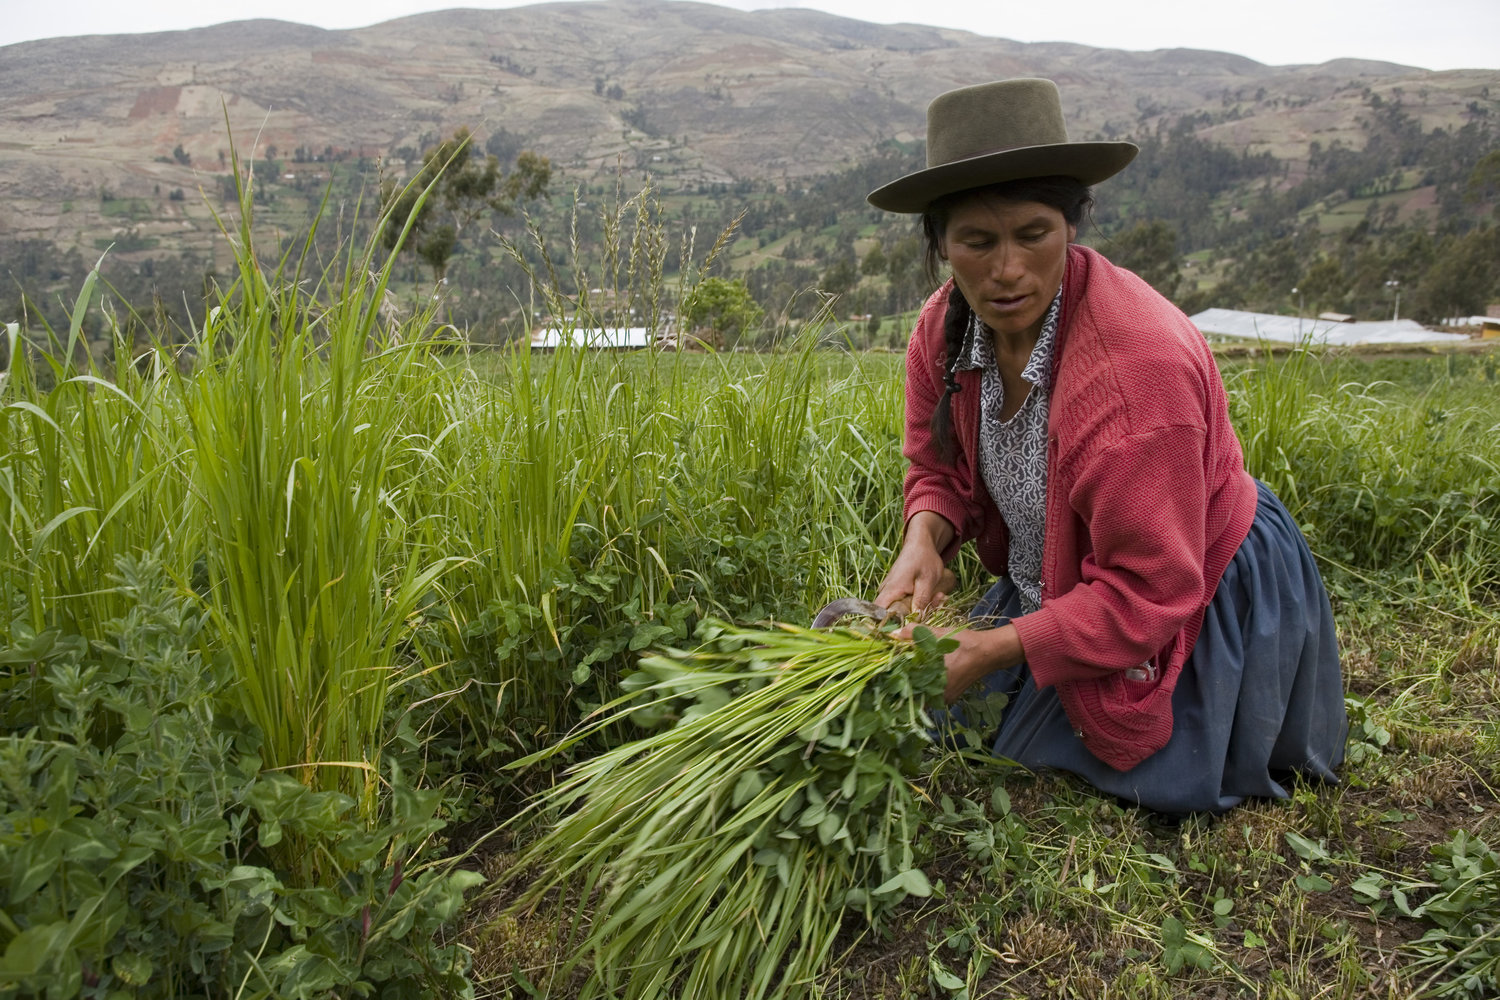 NES Peru - NES Peru has contributed to a greater understanding of the land issues facing Indigenous Peoples and has improved the reporting and monitoring of public institutions.